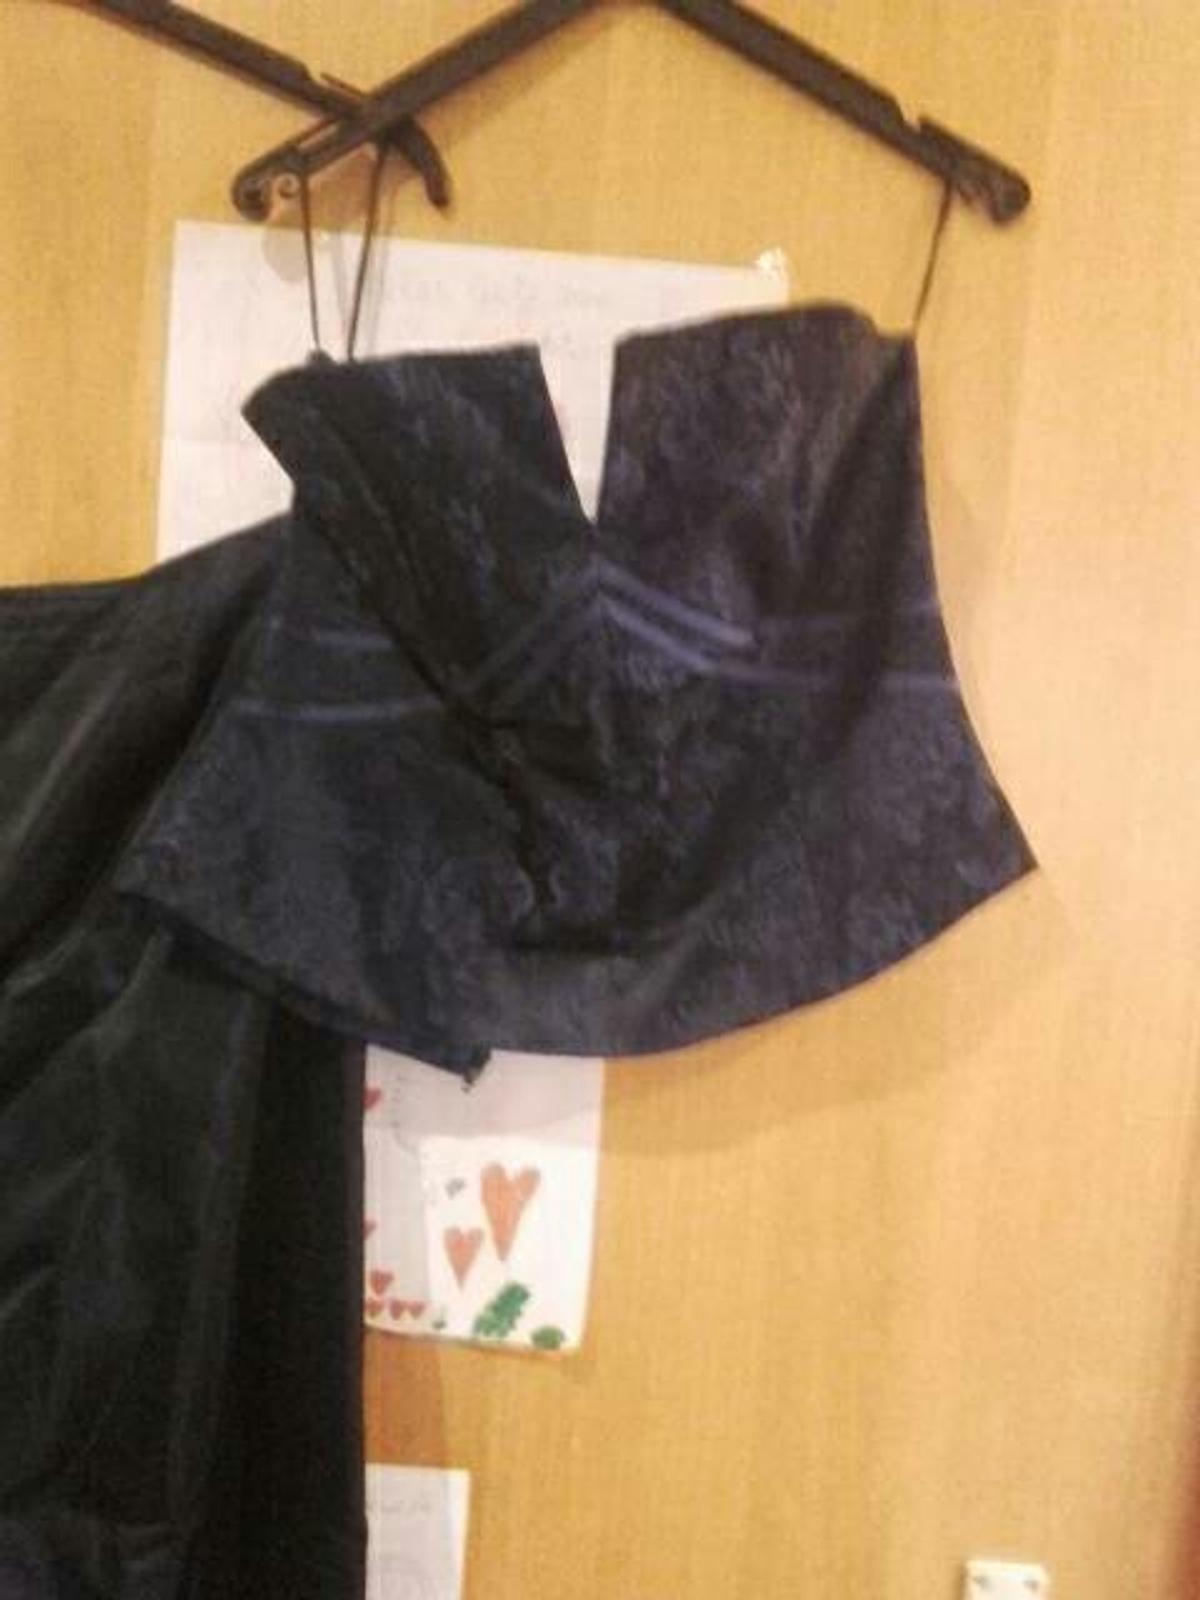 newest 502e1 f9b2a Rock+Corsage+Stolla in 57584 Wallmenroth for €23.00 for sale ...